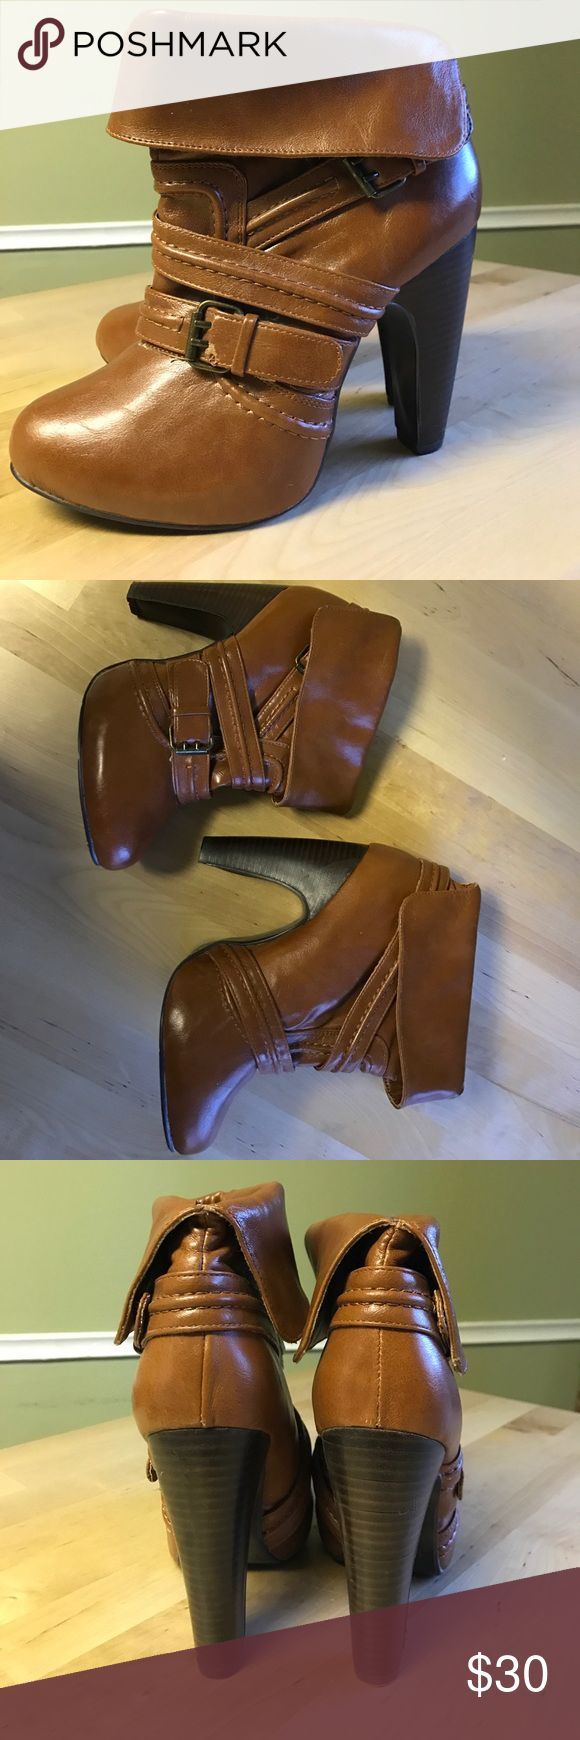 """Not Rated Booties Never before worn booties from the brand """"Not Rated"""". Nice cognac/tan leather color in size 7.5 Not Rated Shoes Ankle Boots & Booties"""